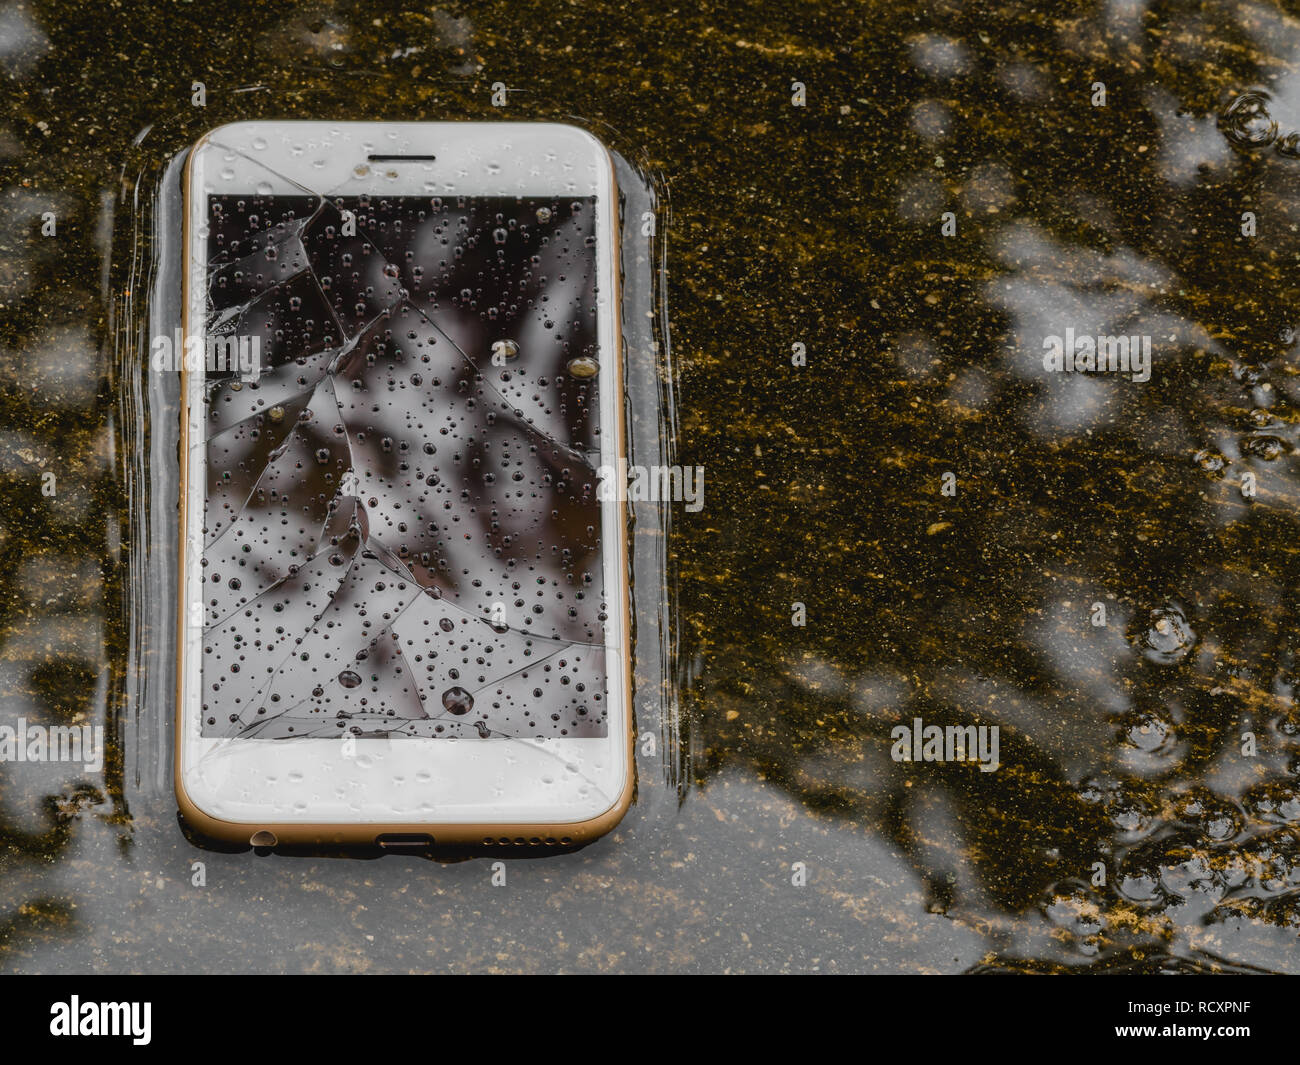 Cracked screen and wet smart phone dropped on flooding floor